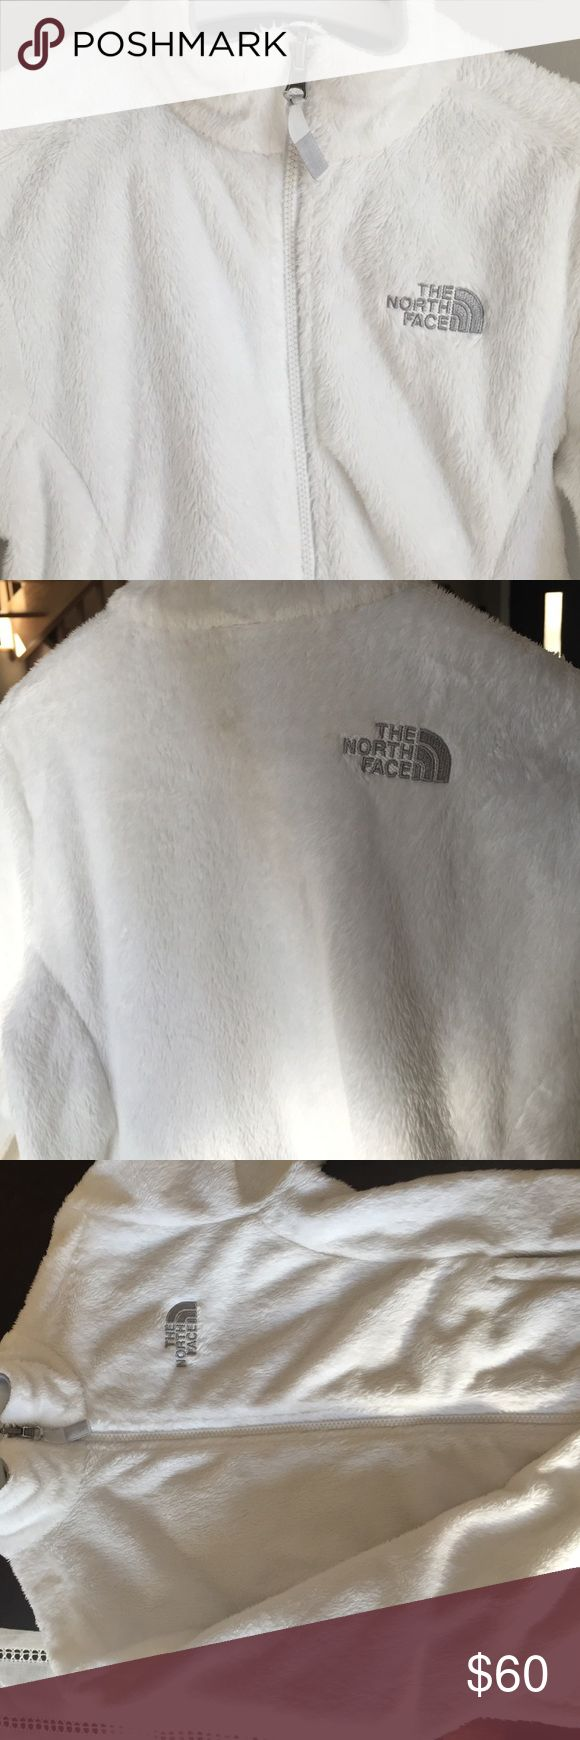 White north face jacket Very soft furry lined north face jacket. Barely worn perfectly white, accompanied with grey accents. North Face Jackets & Coats